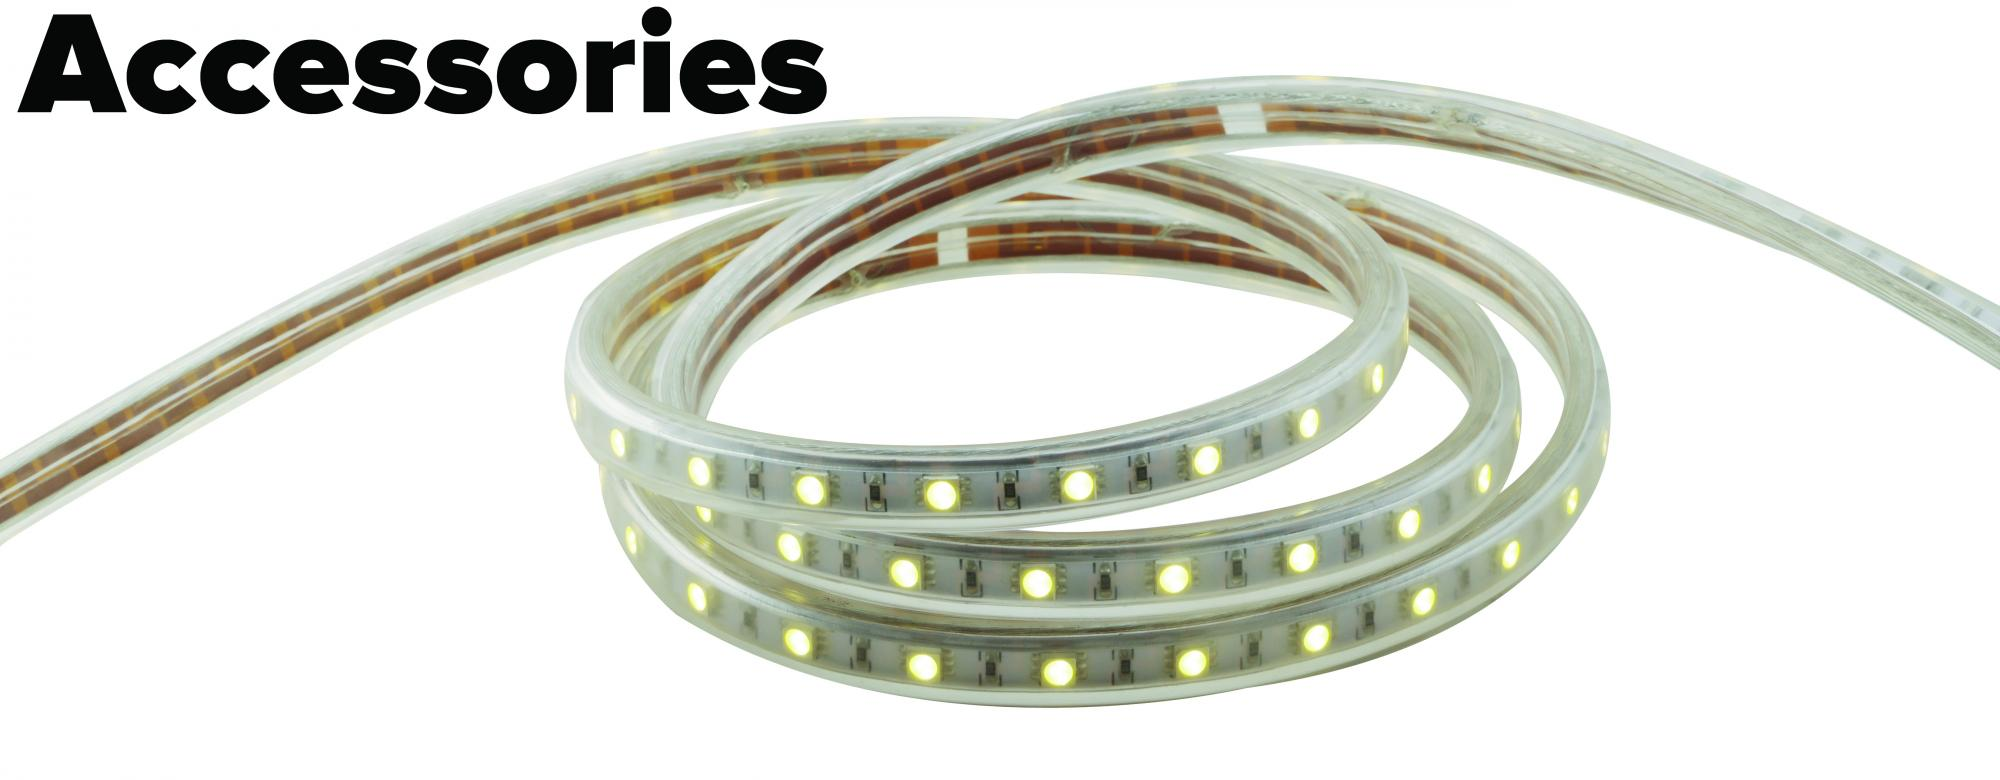 Led flat rope light accessories elco lighting led flat rope light accessories mozeypictures Gallery